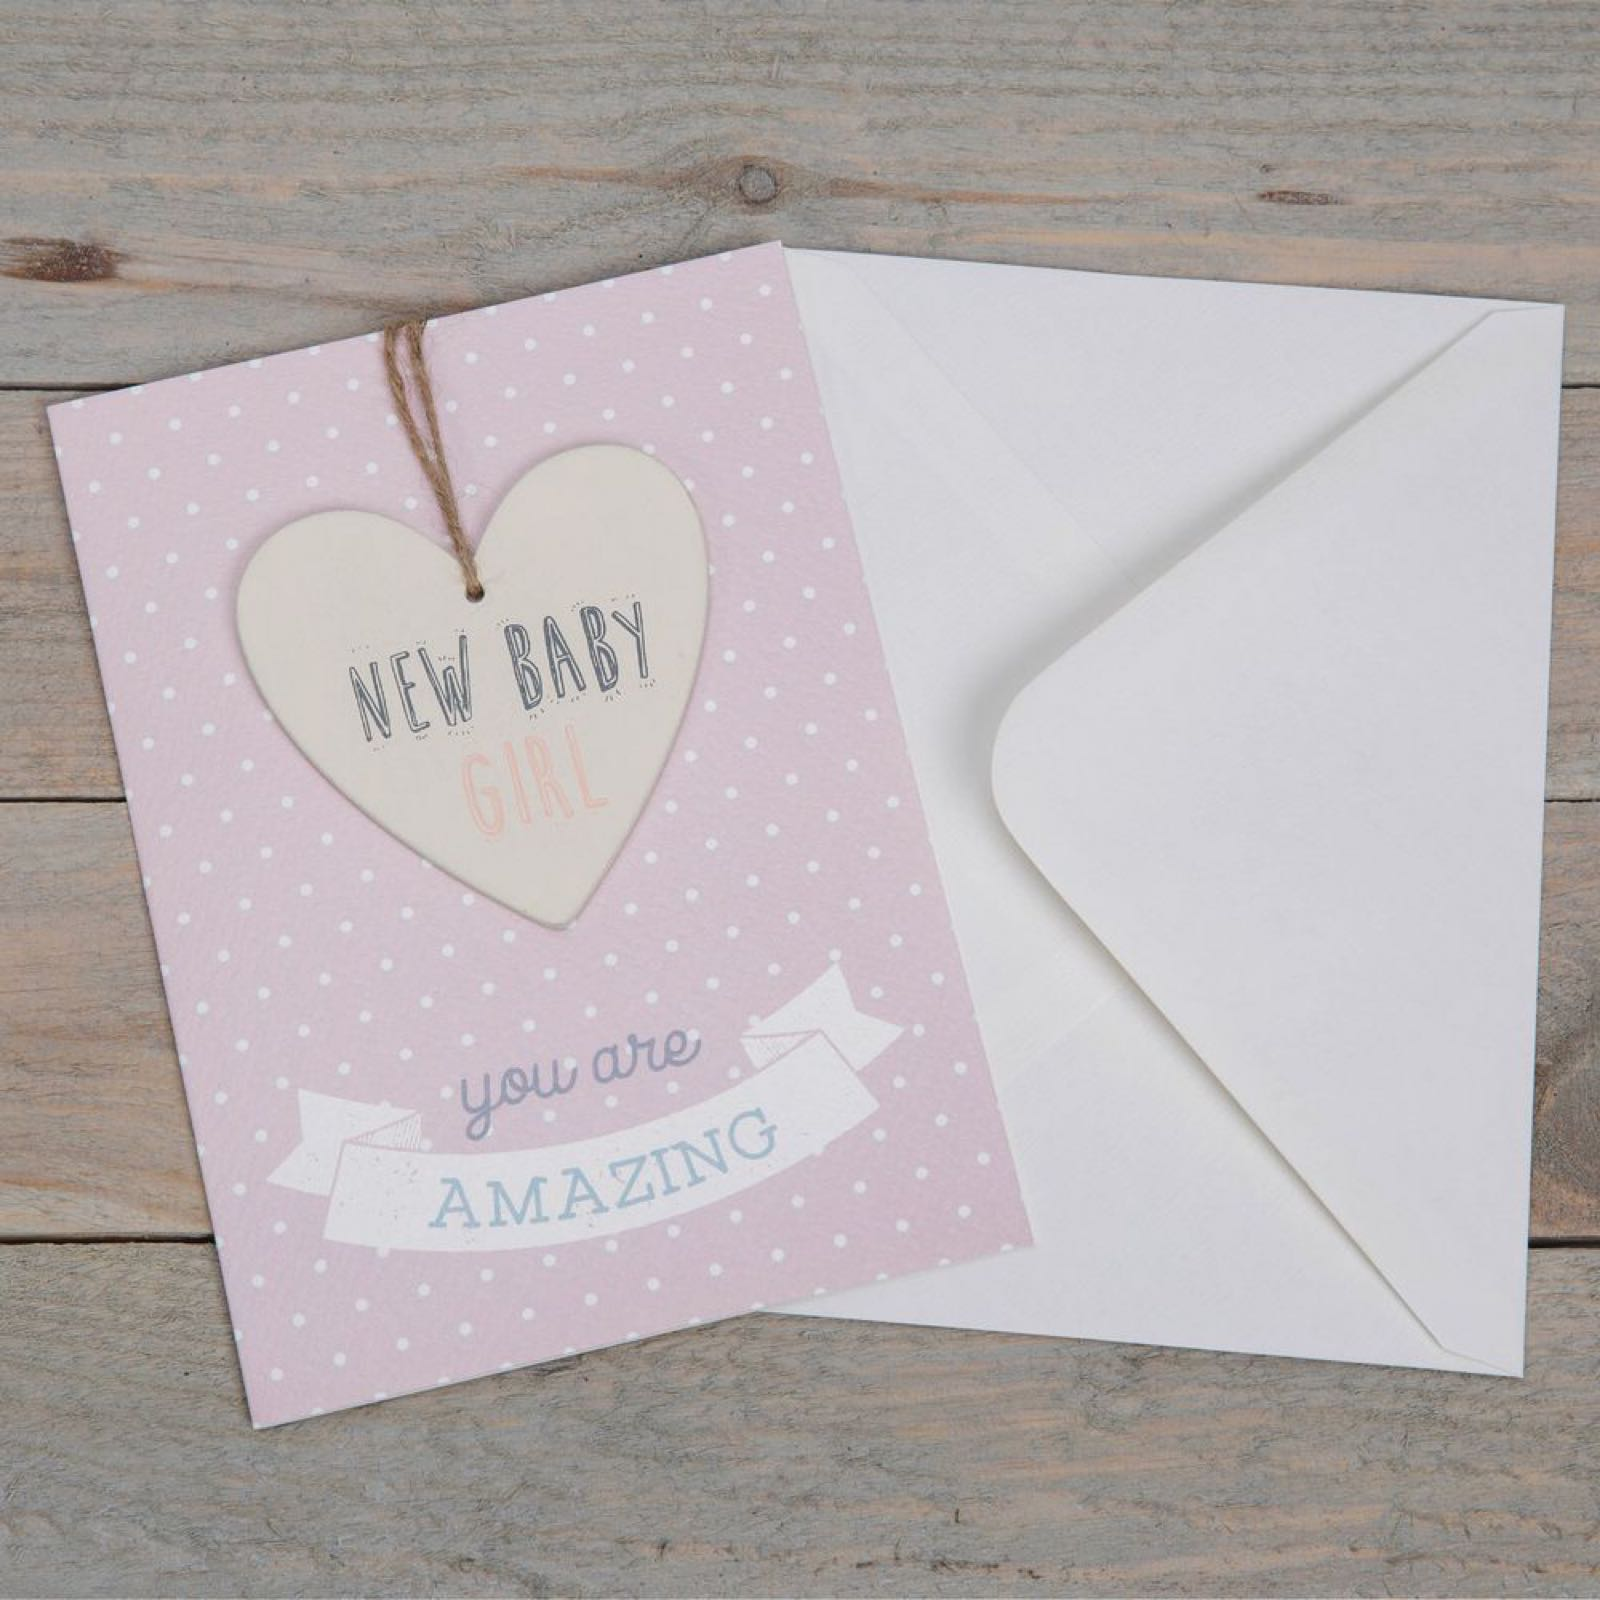 New Baby Girl Greeting Card & Plaque